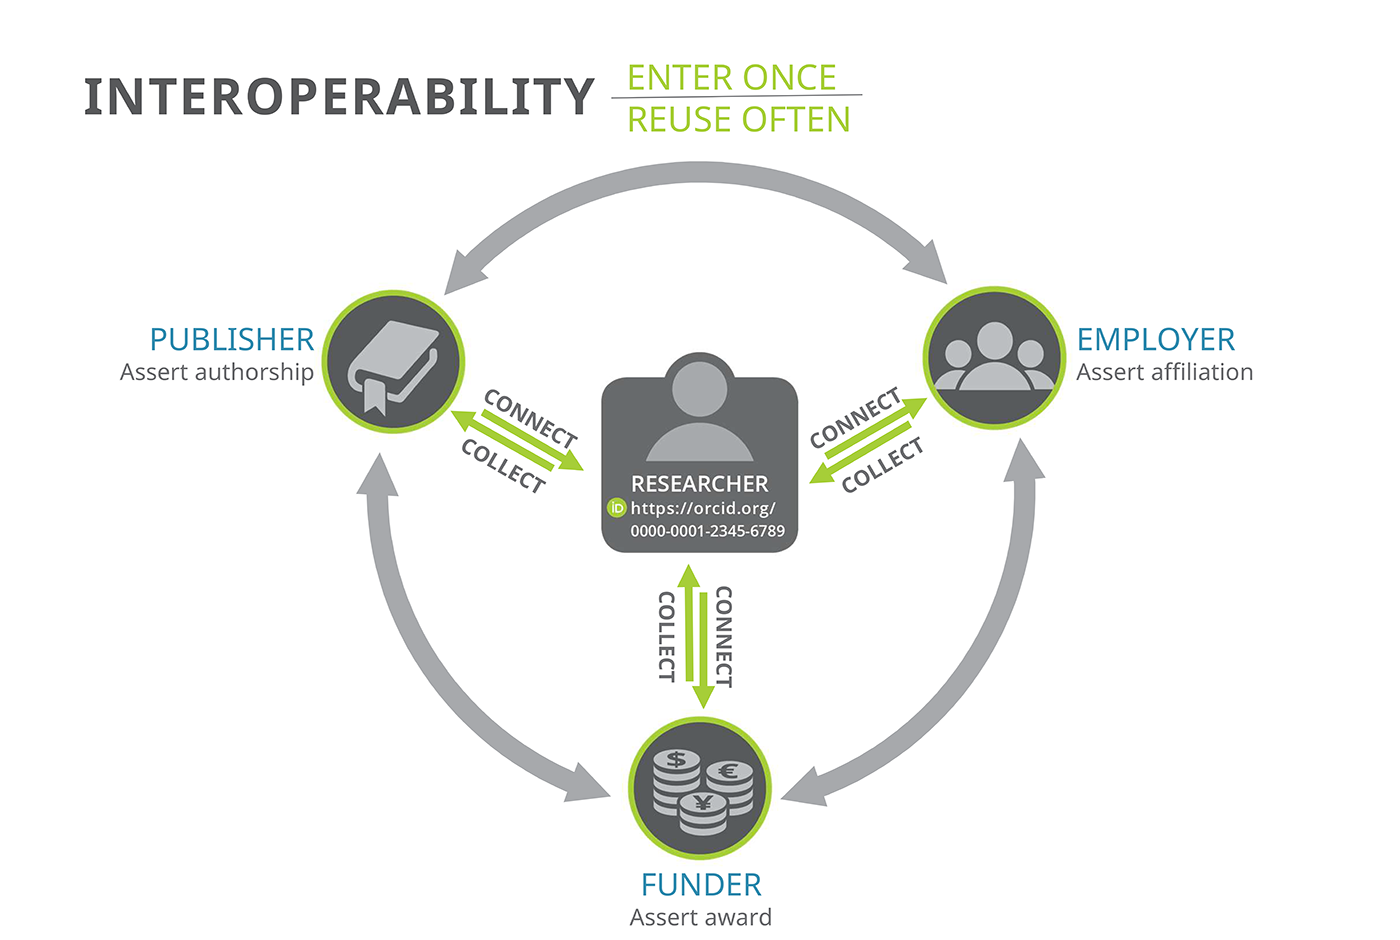 "Graphic shows an ecosystem diagram with a researcher at the center with their ORCID iD, and publishers, employers, and funders forming a connected circle showing how they can connect with the research and each other. Text within the graphic reads: ""Interoperability, Enter Once Re-use often"""